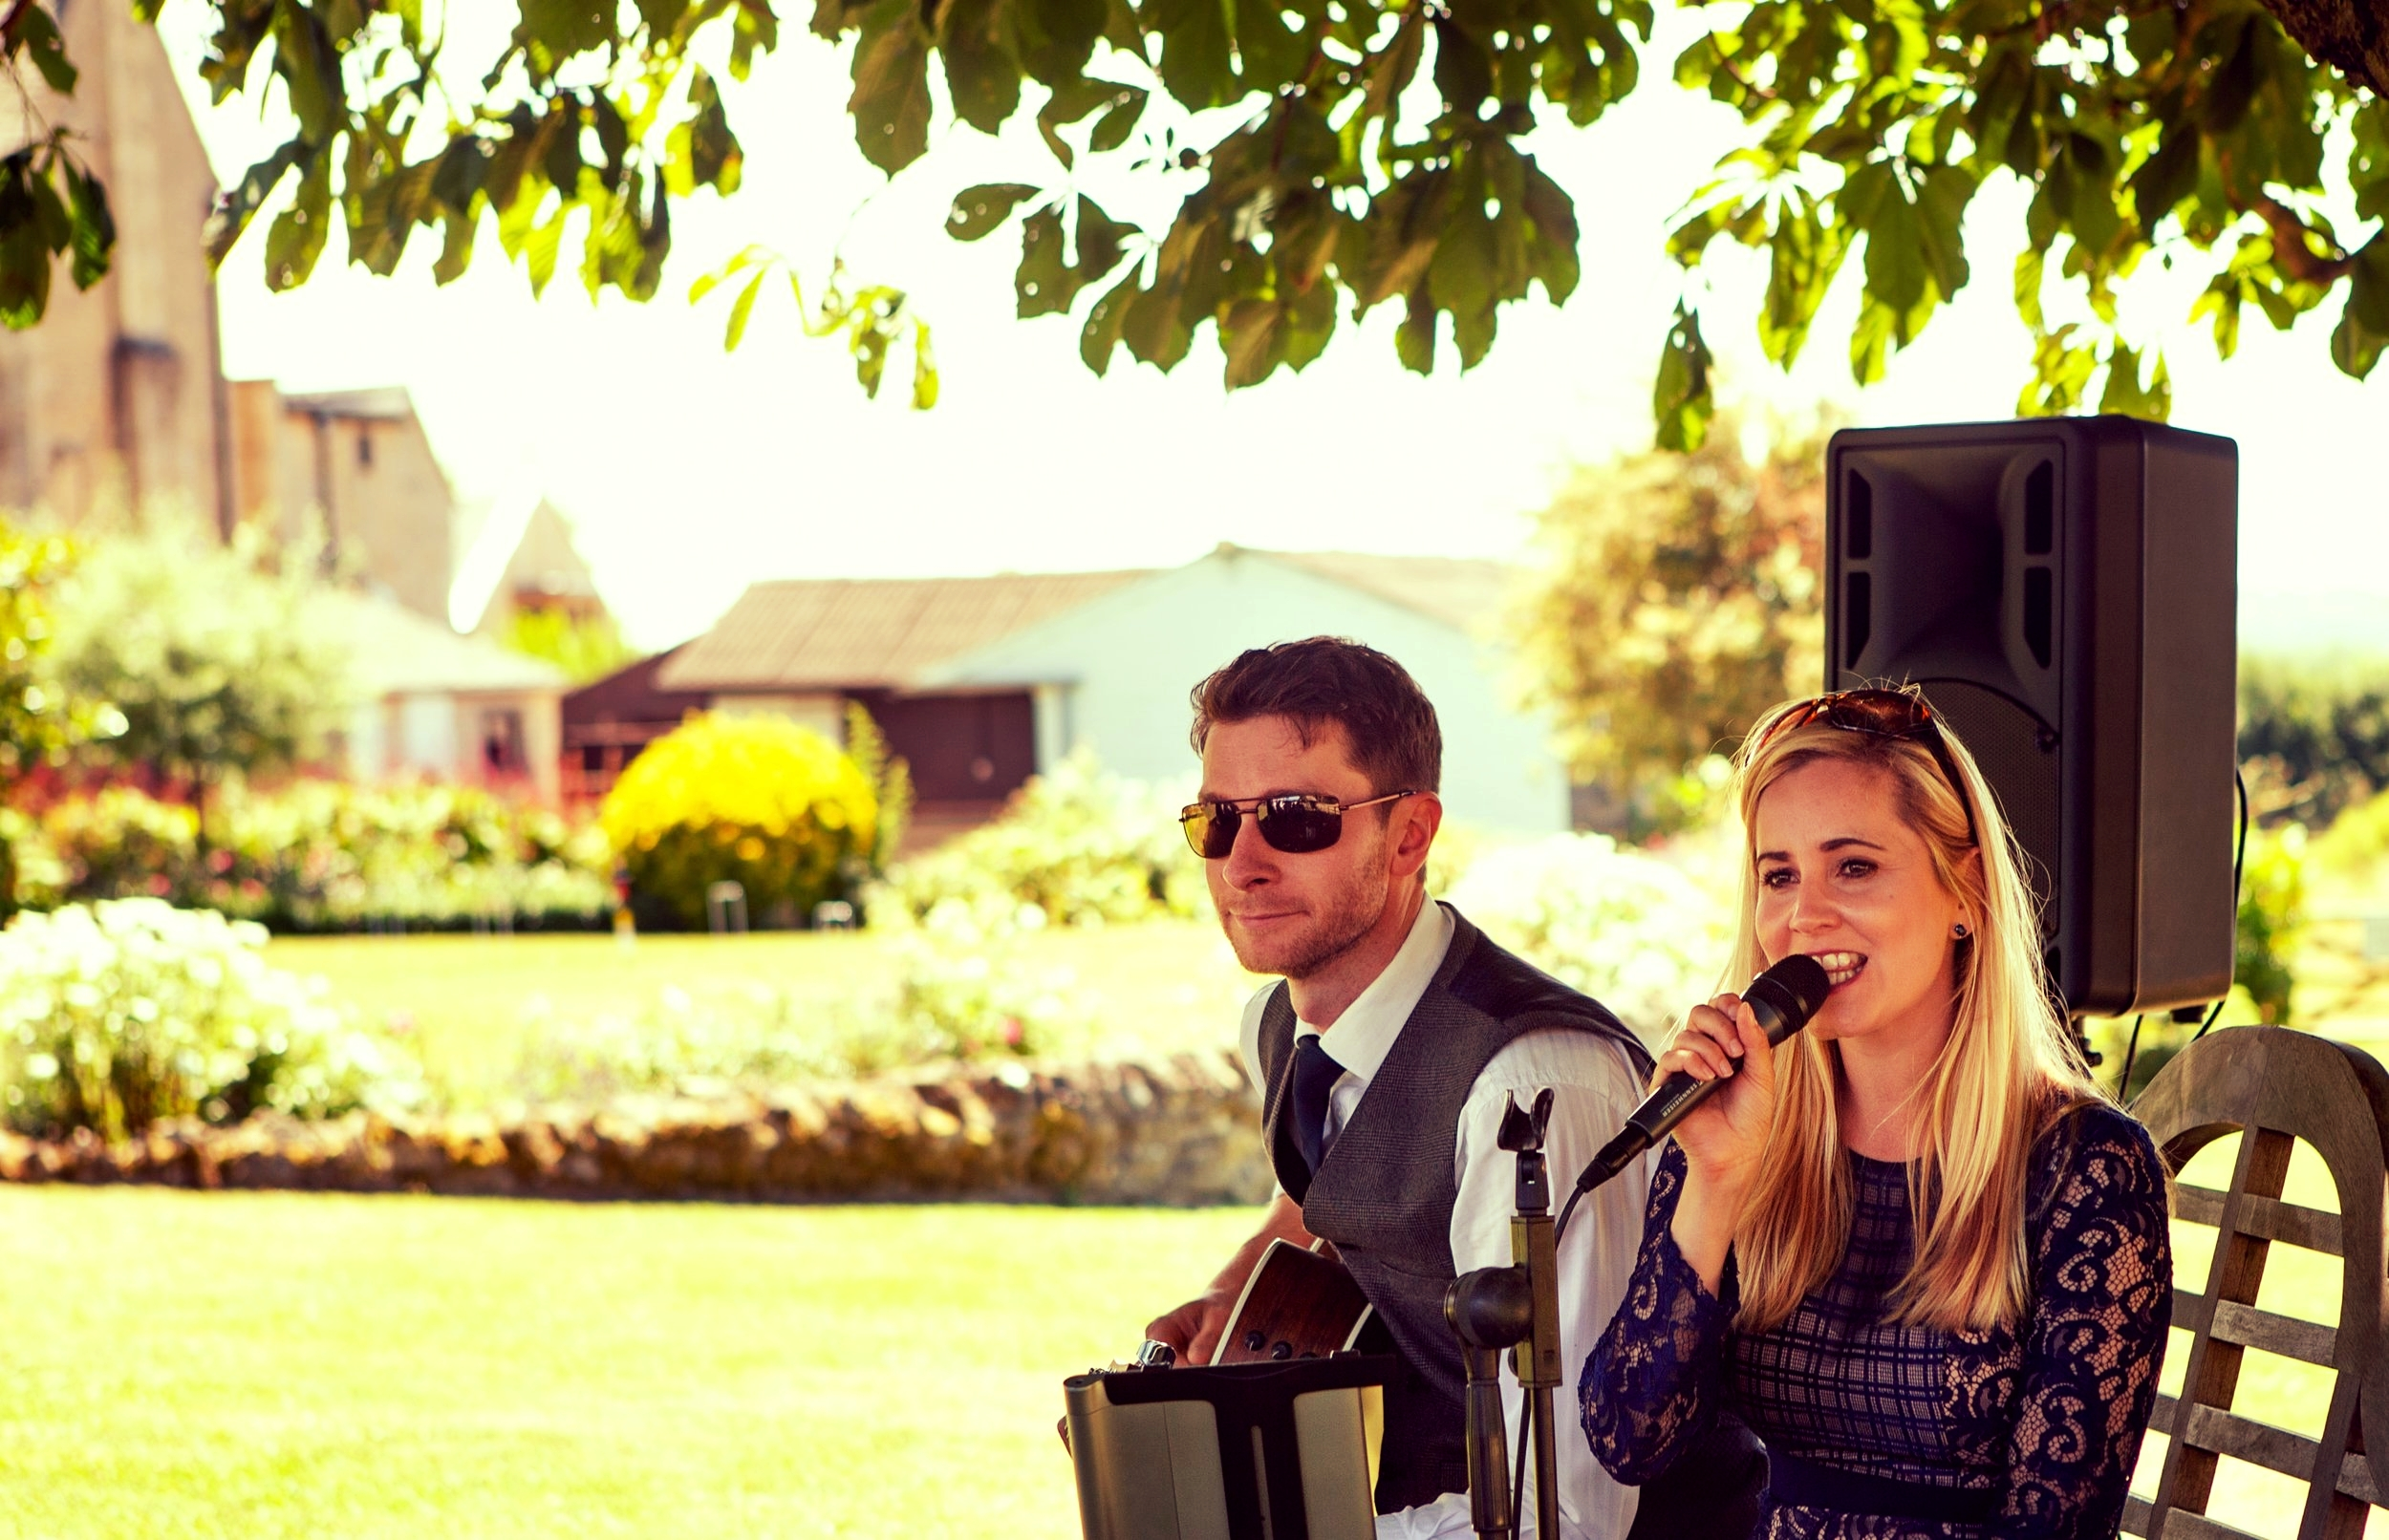 Taylormade Acoustic Duo Wedding Band Hyde House Wedding Ceremony Stowe On The Wold